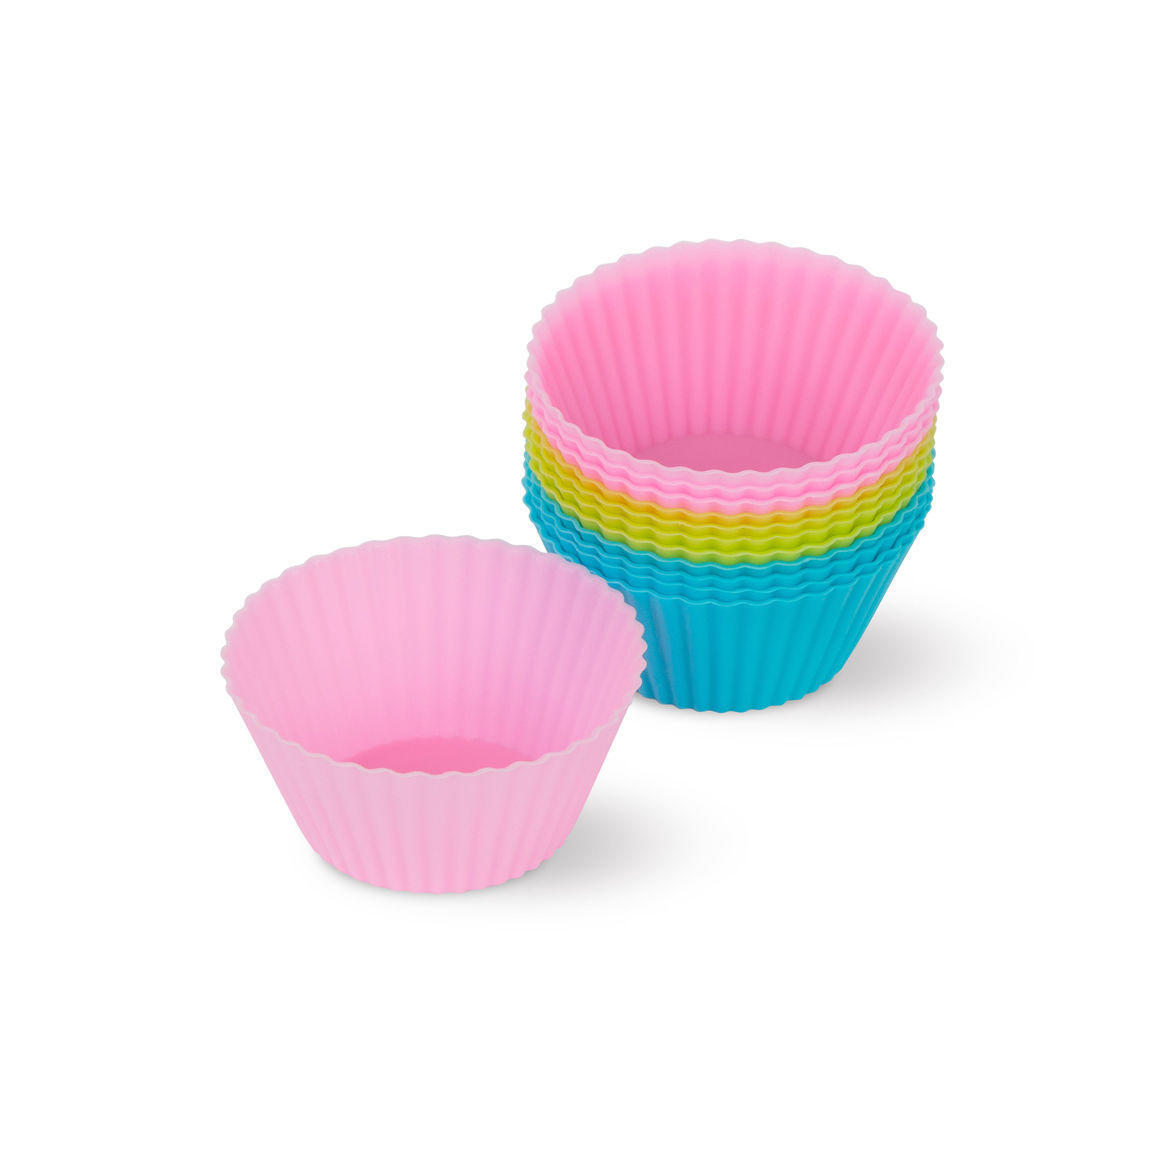 Muffin Moulds   Trada Marketplace